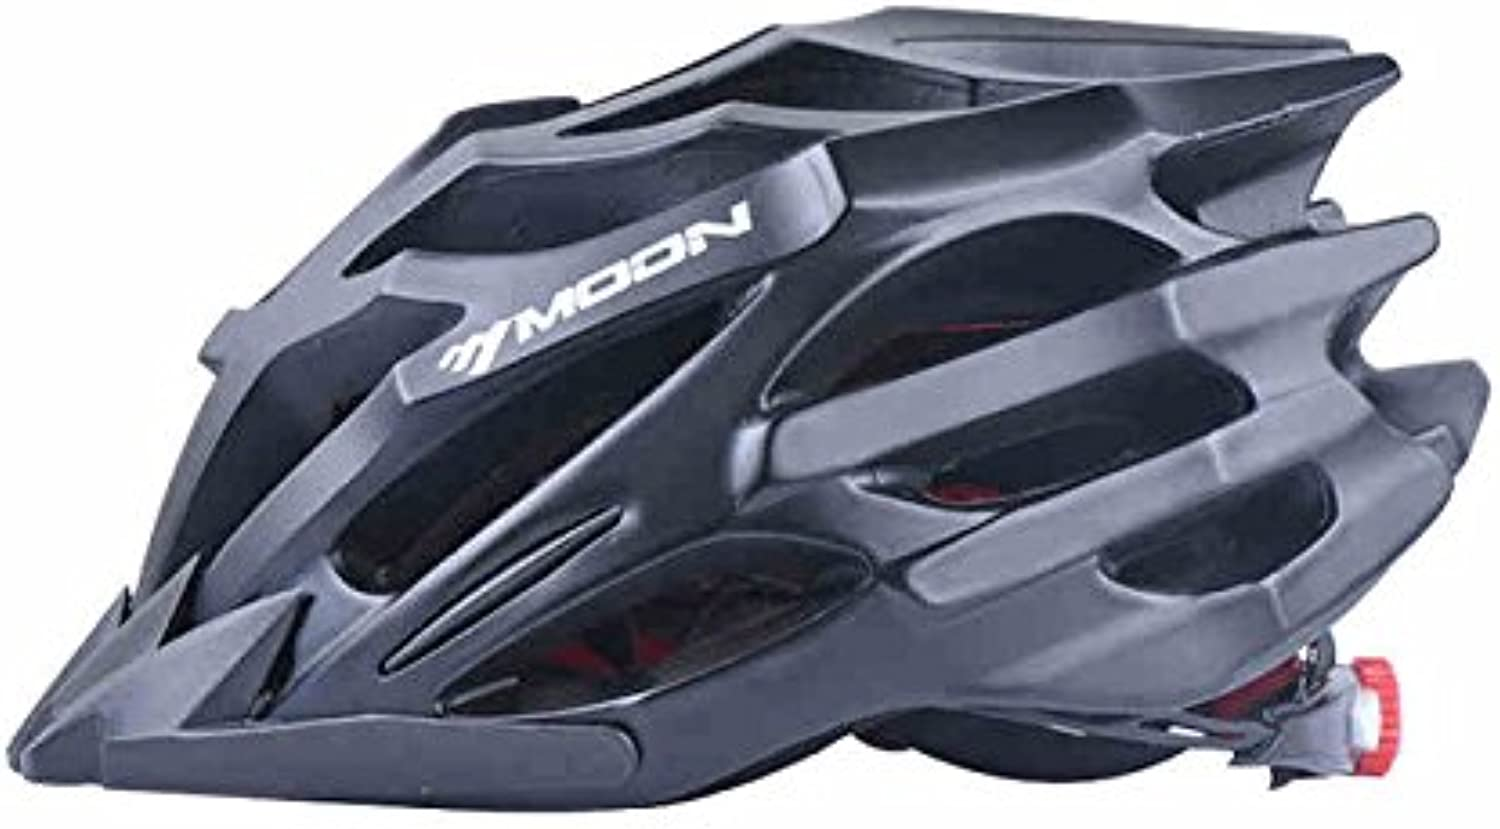 Cycket 260g Ultra Light Weight  Bike Helmet, Bike Riding Helmet Combining Polycarbonate Outer Shell with ImpactAbsorbing Foam with 27 Cooling Vents Black